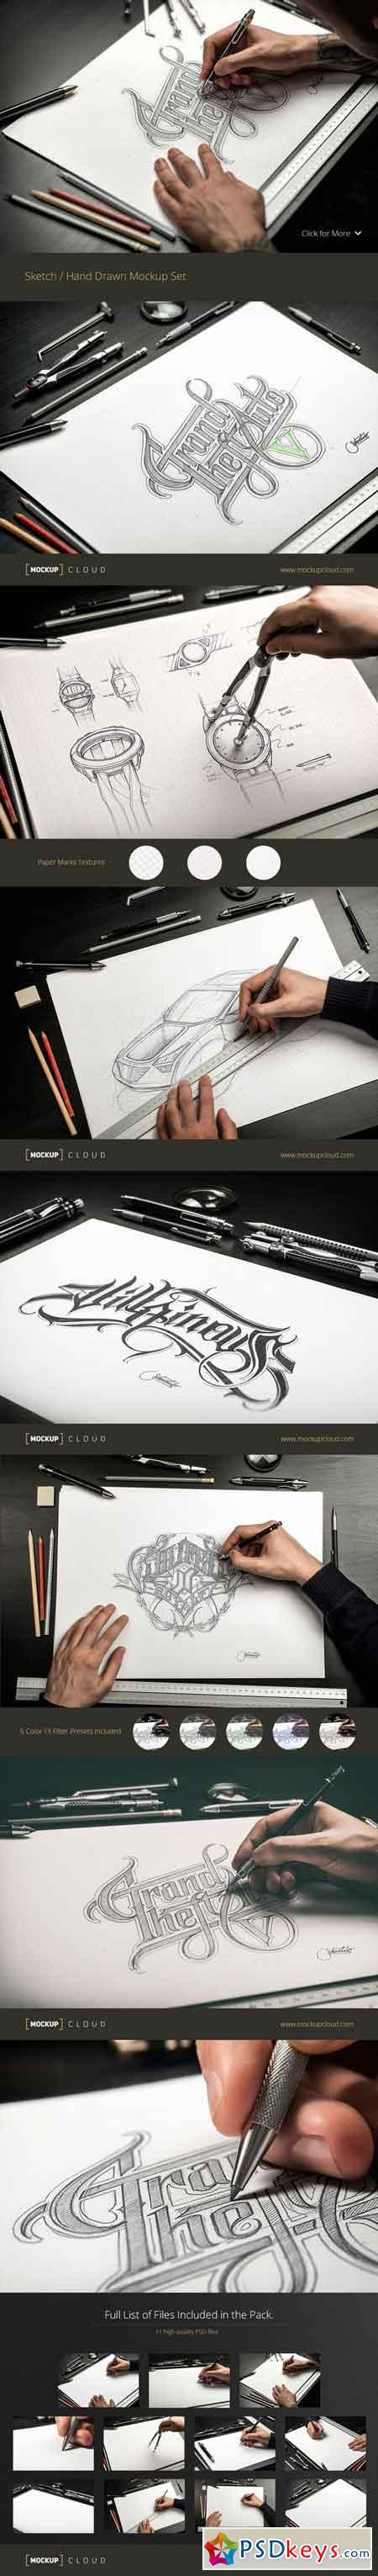 Sketch Hand Drawn Mockup Set 388072